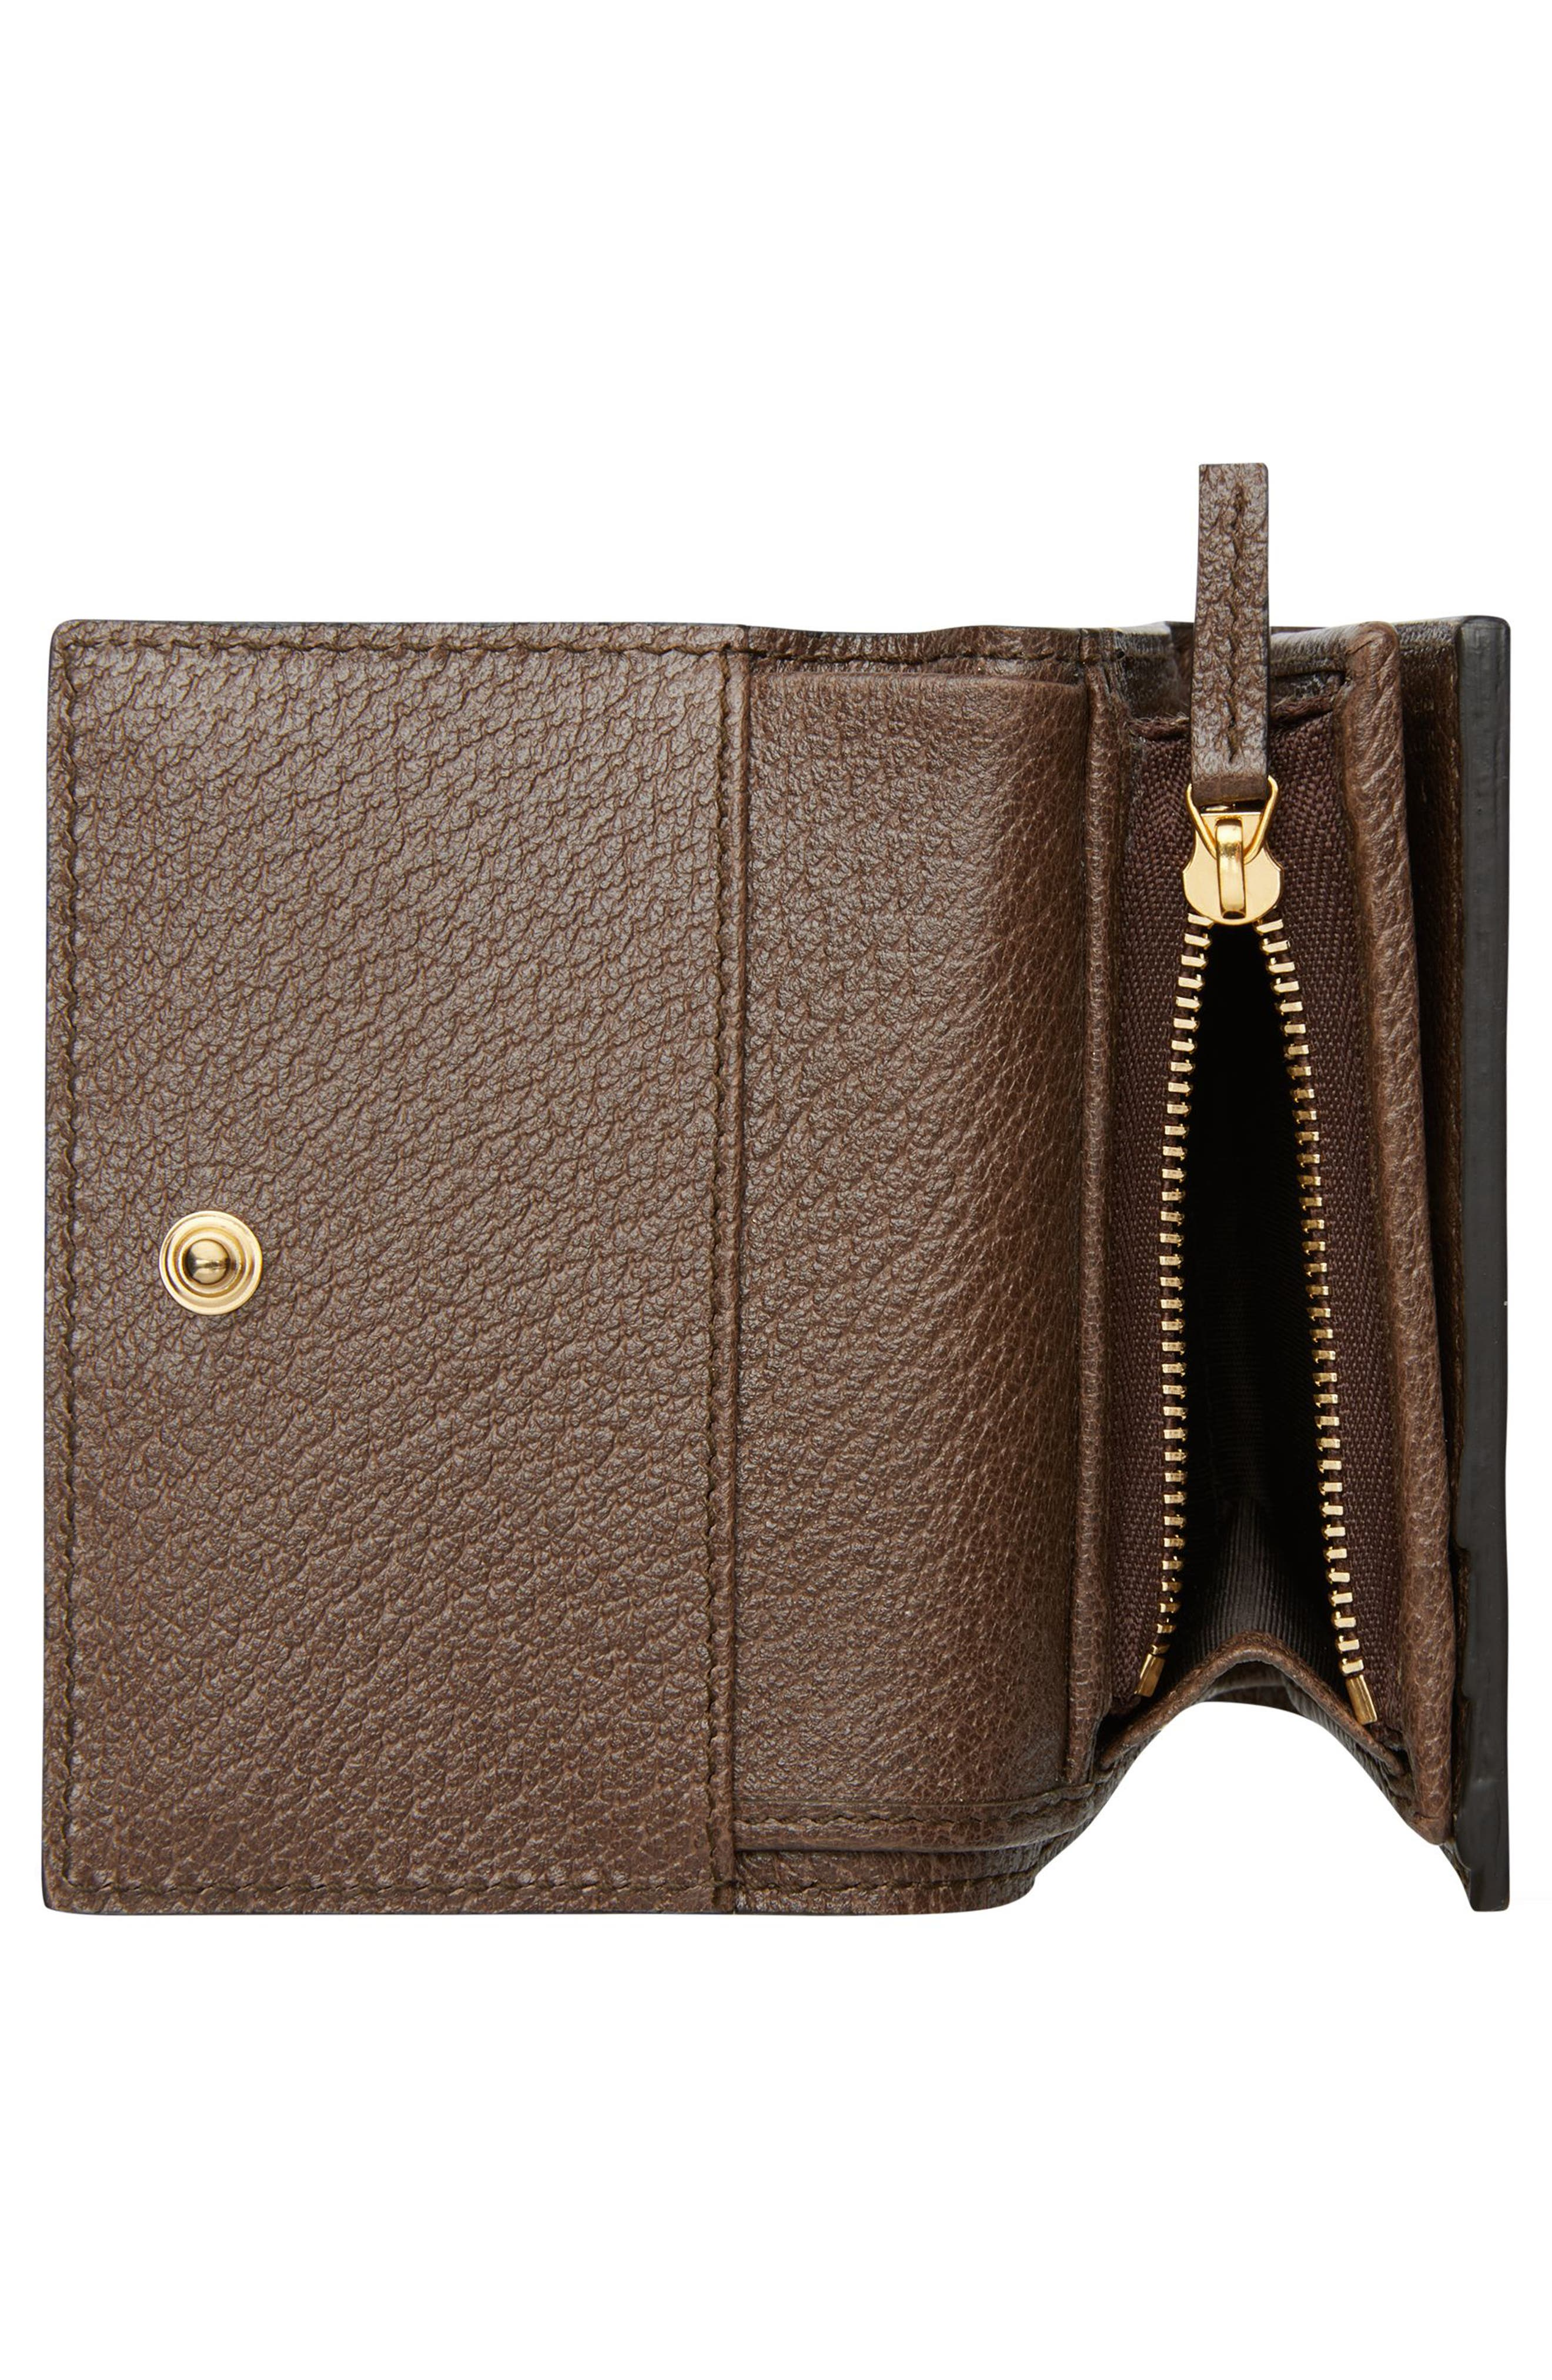 Ophidia GG Supreme French Wallet,                             Alternate thumbnail 3, color,                             Beige Ebony/ Acero/ Vert Red